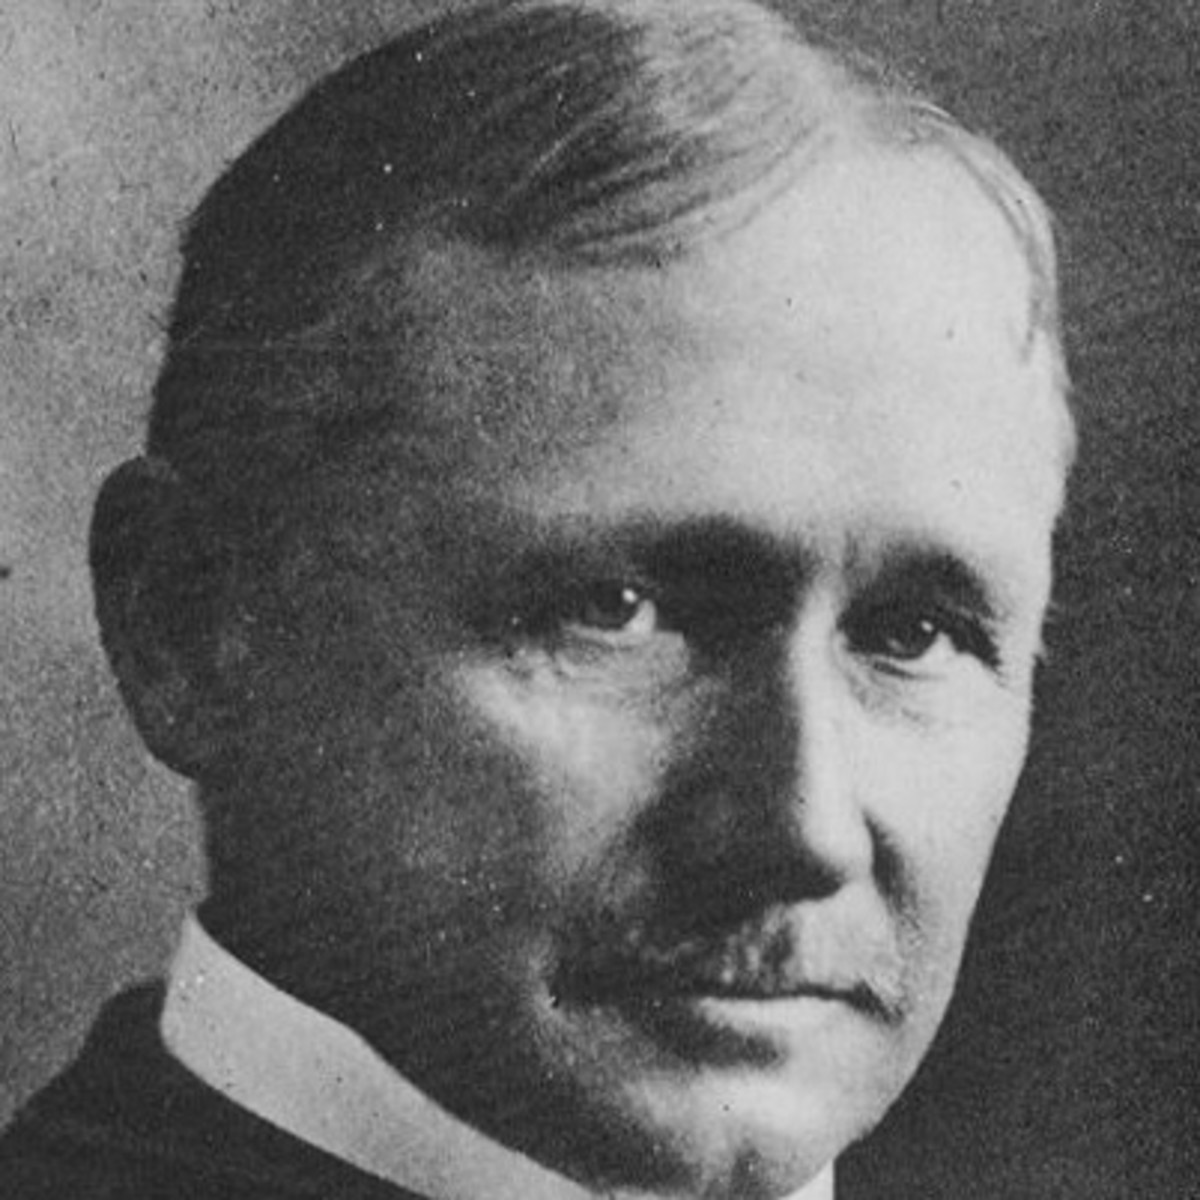 frederick winslow taylor March 22, 1915 obituary f w taylor, expert in efficiency, dies by the new york times philadelphia, march 21--frederick winslow taylor, originator of the modern scientific management.